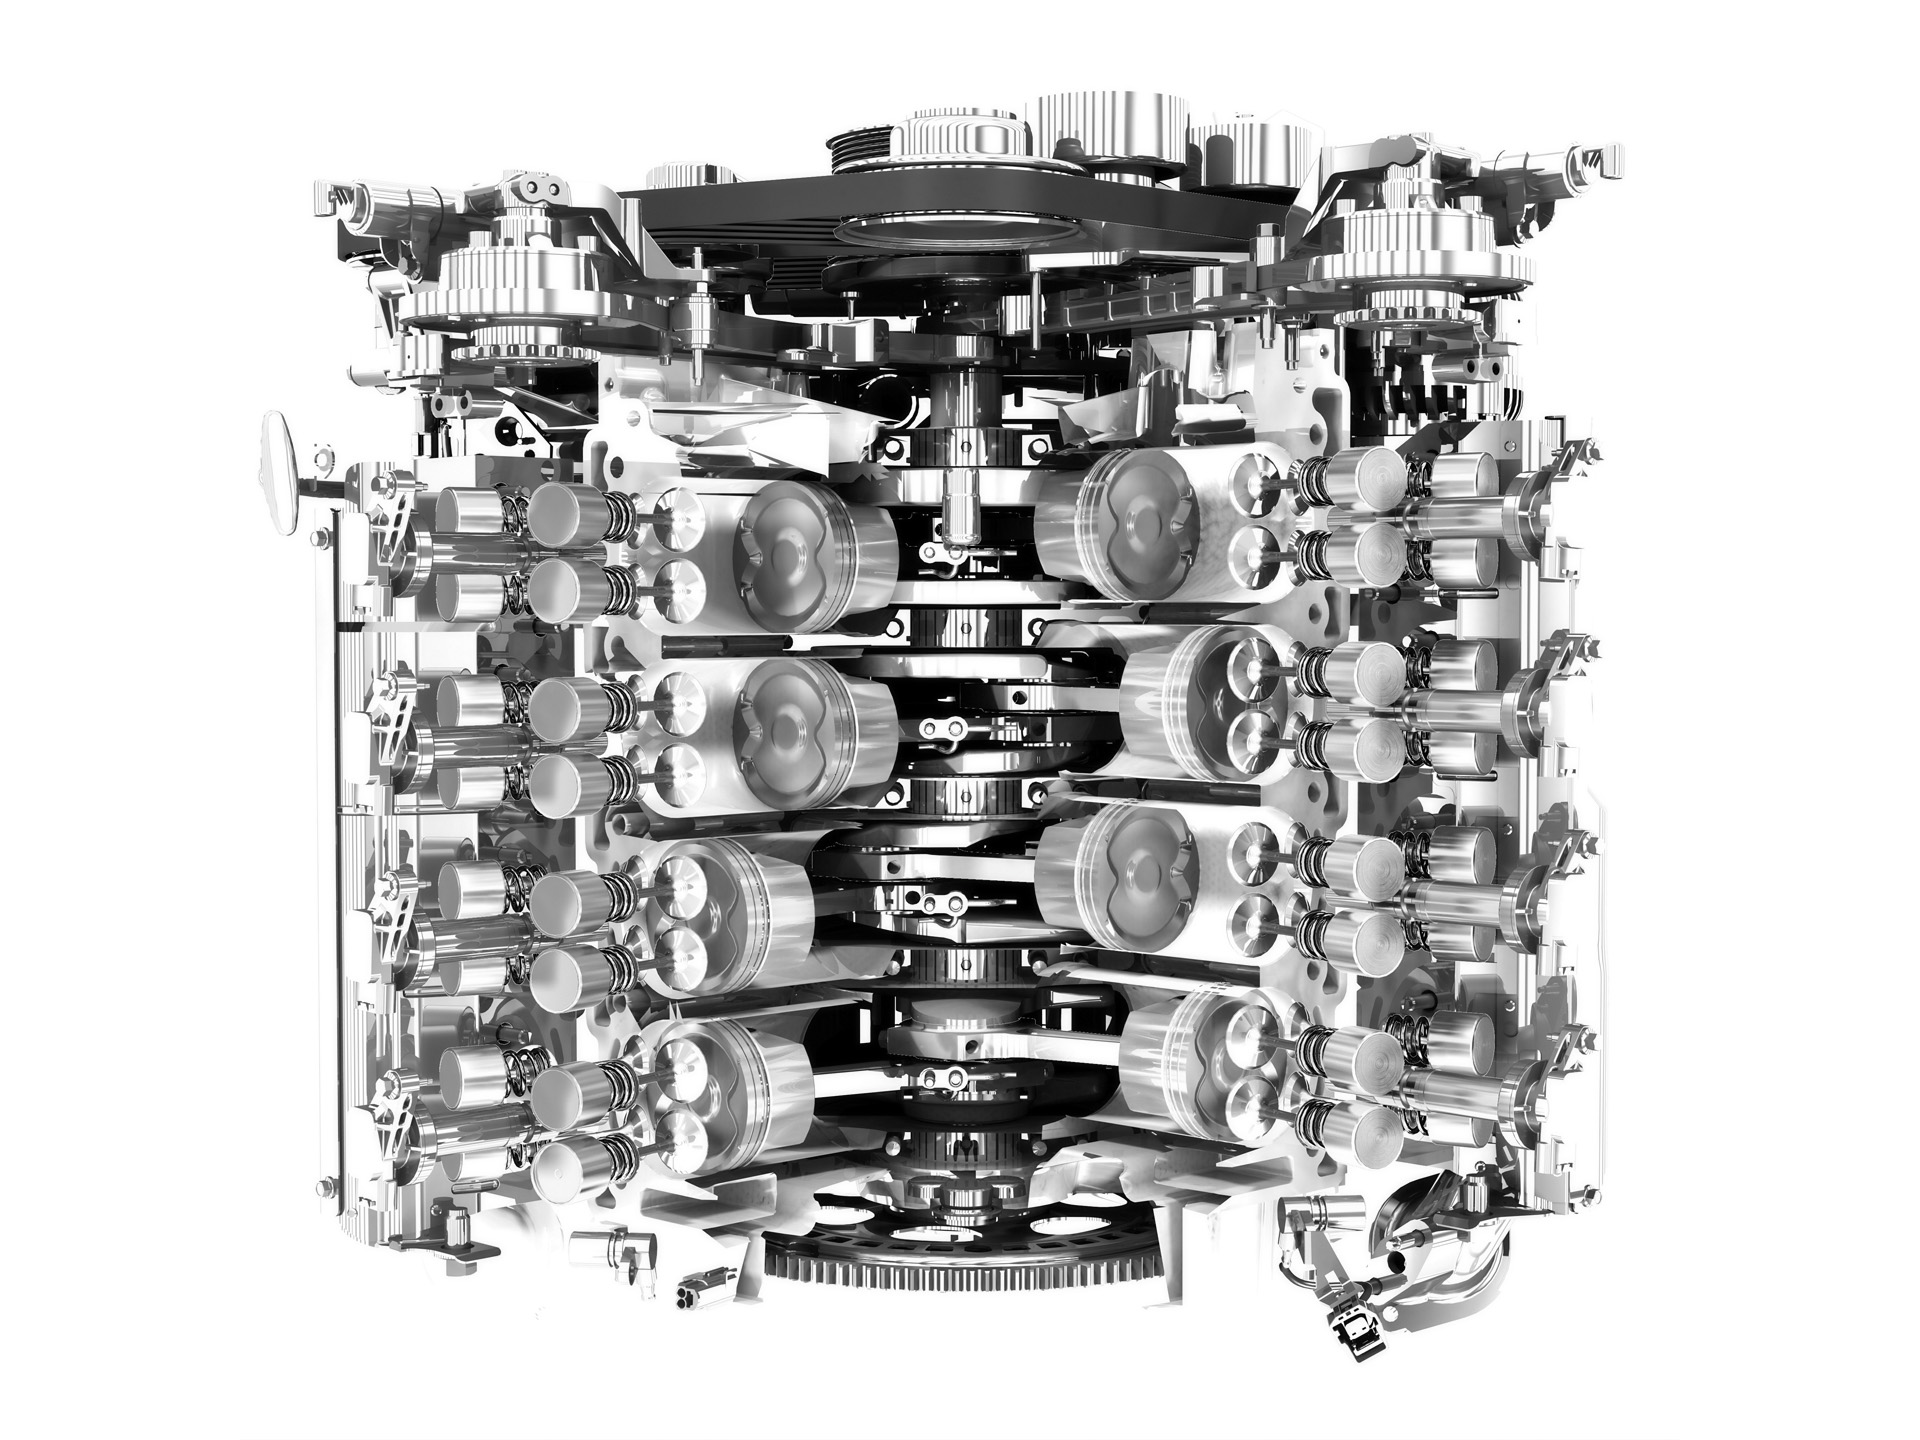 Sample P1119 Engine